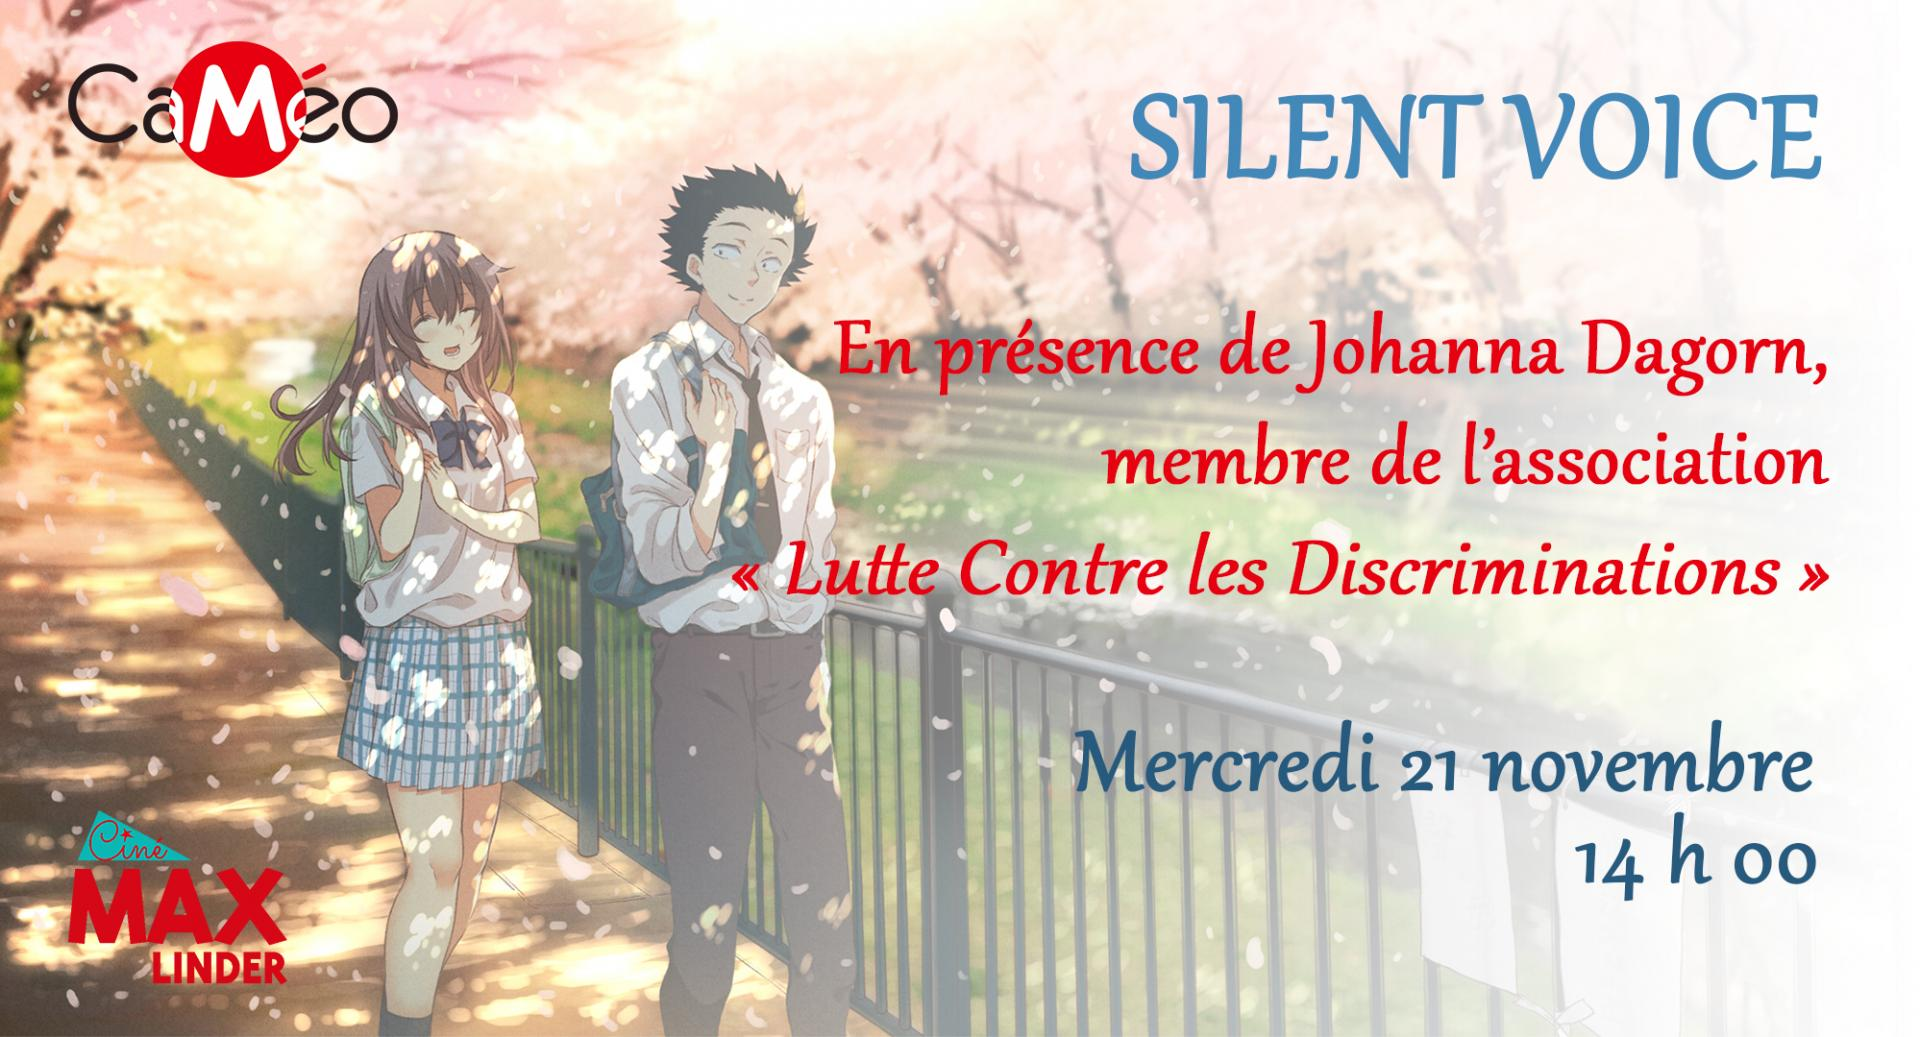 SILENT VOICE A CREON !